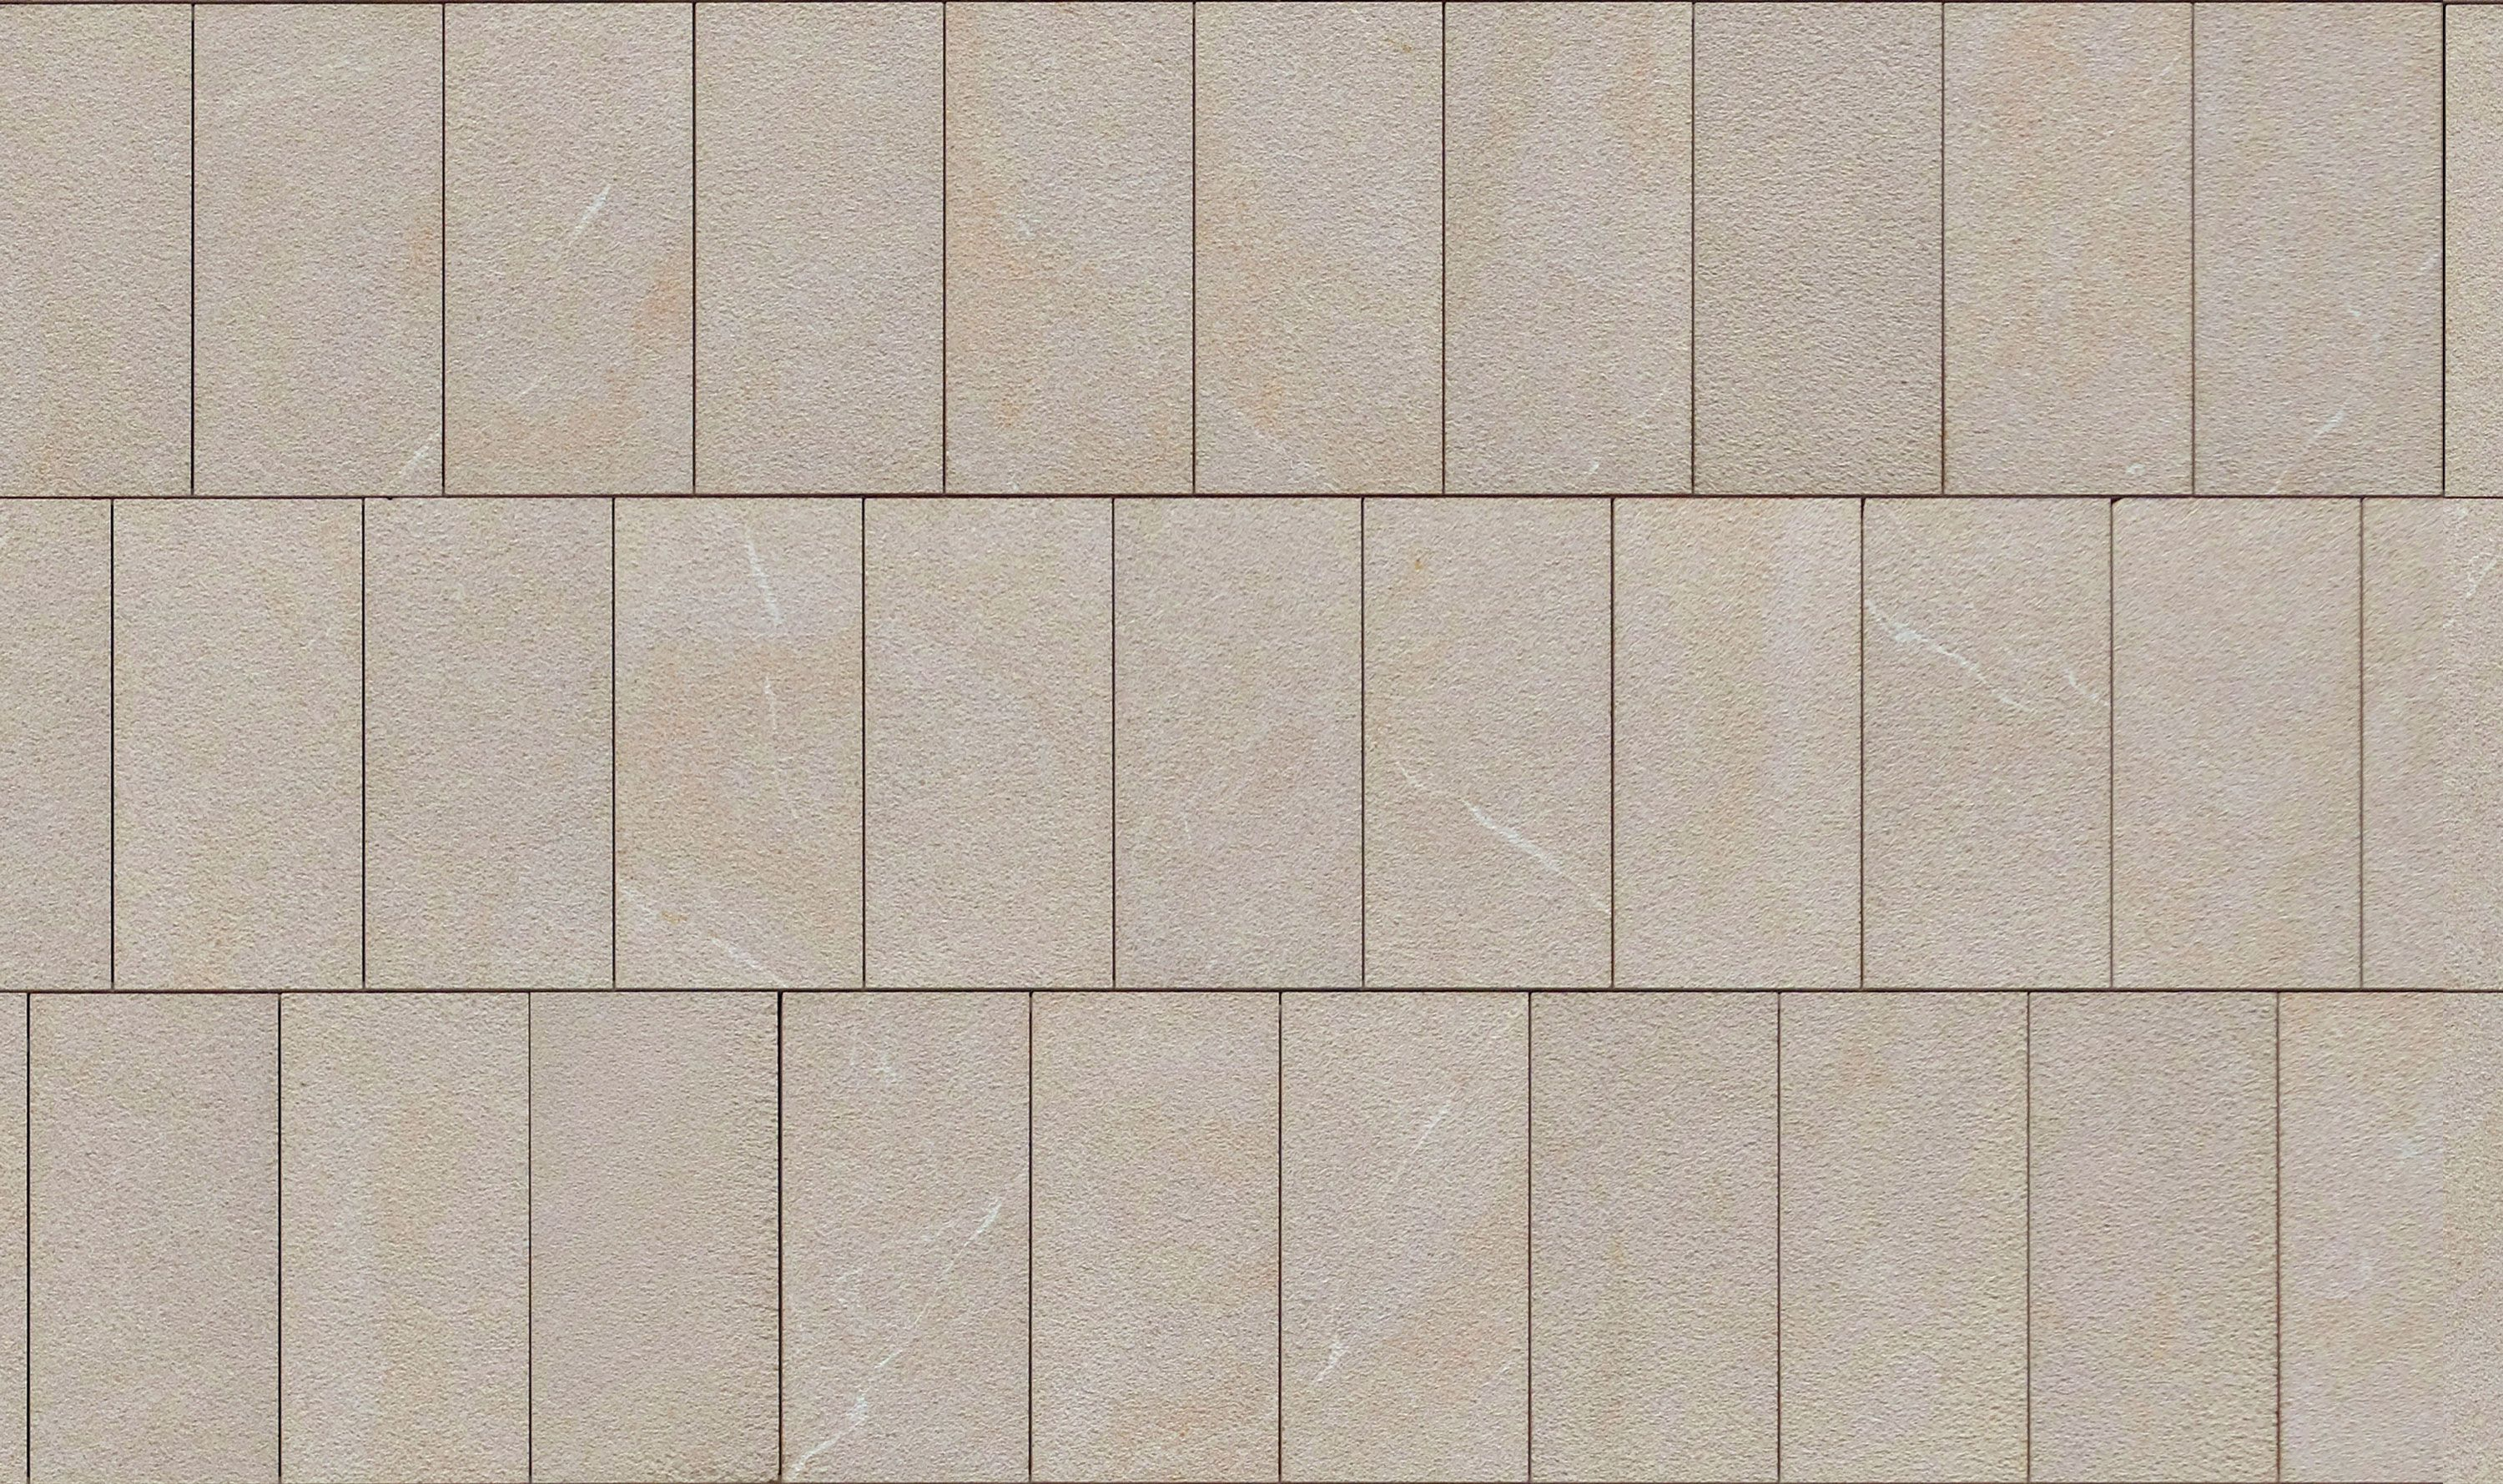 Sandstone Rainscreen Cladding Architextures Seamless